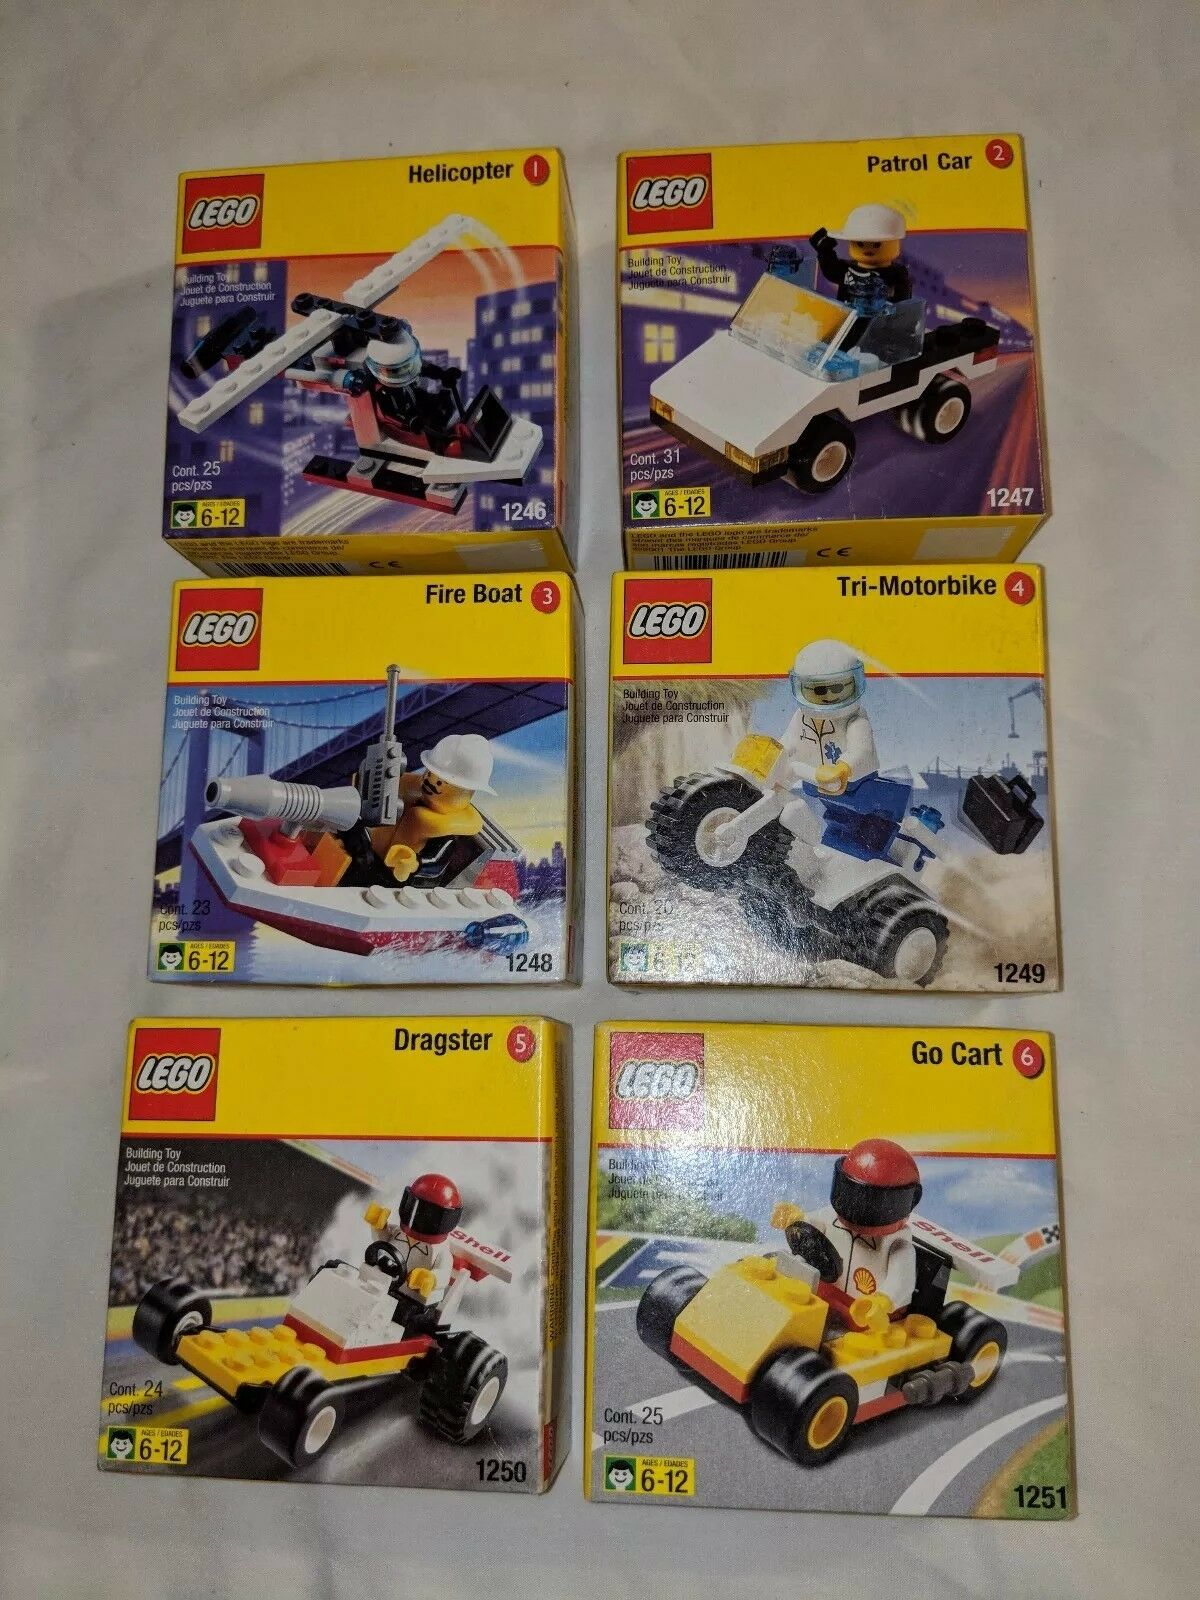 LEGO Lot 1246 Helpcopter 1247 Patrol 1248 Fire Boat 1249 1250 Dragster 1251 NEW